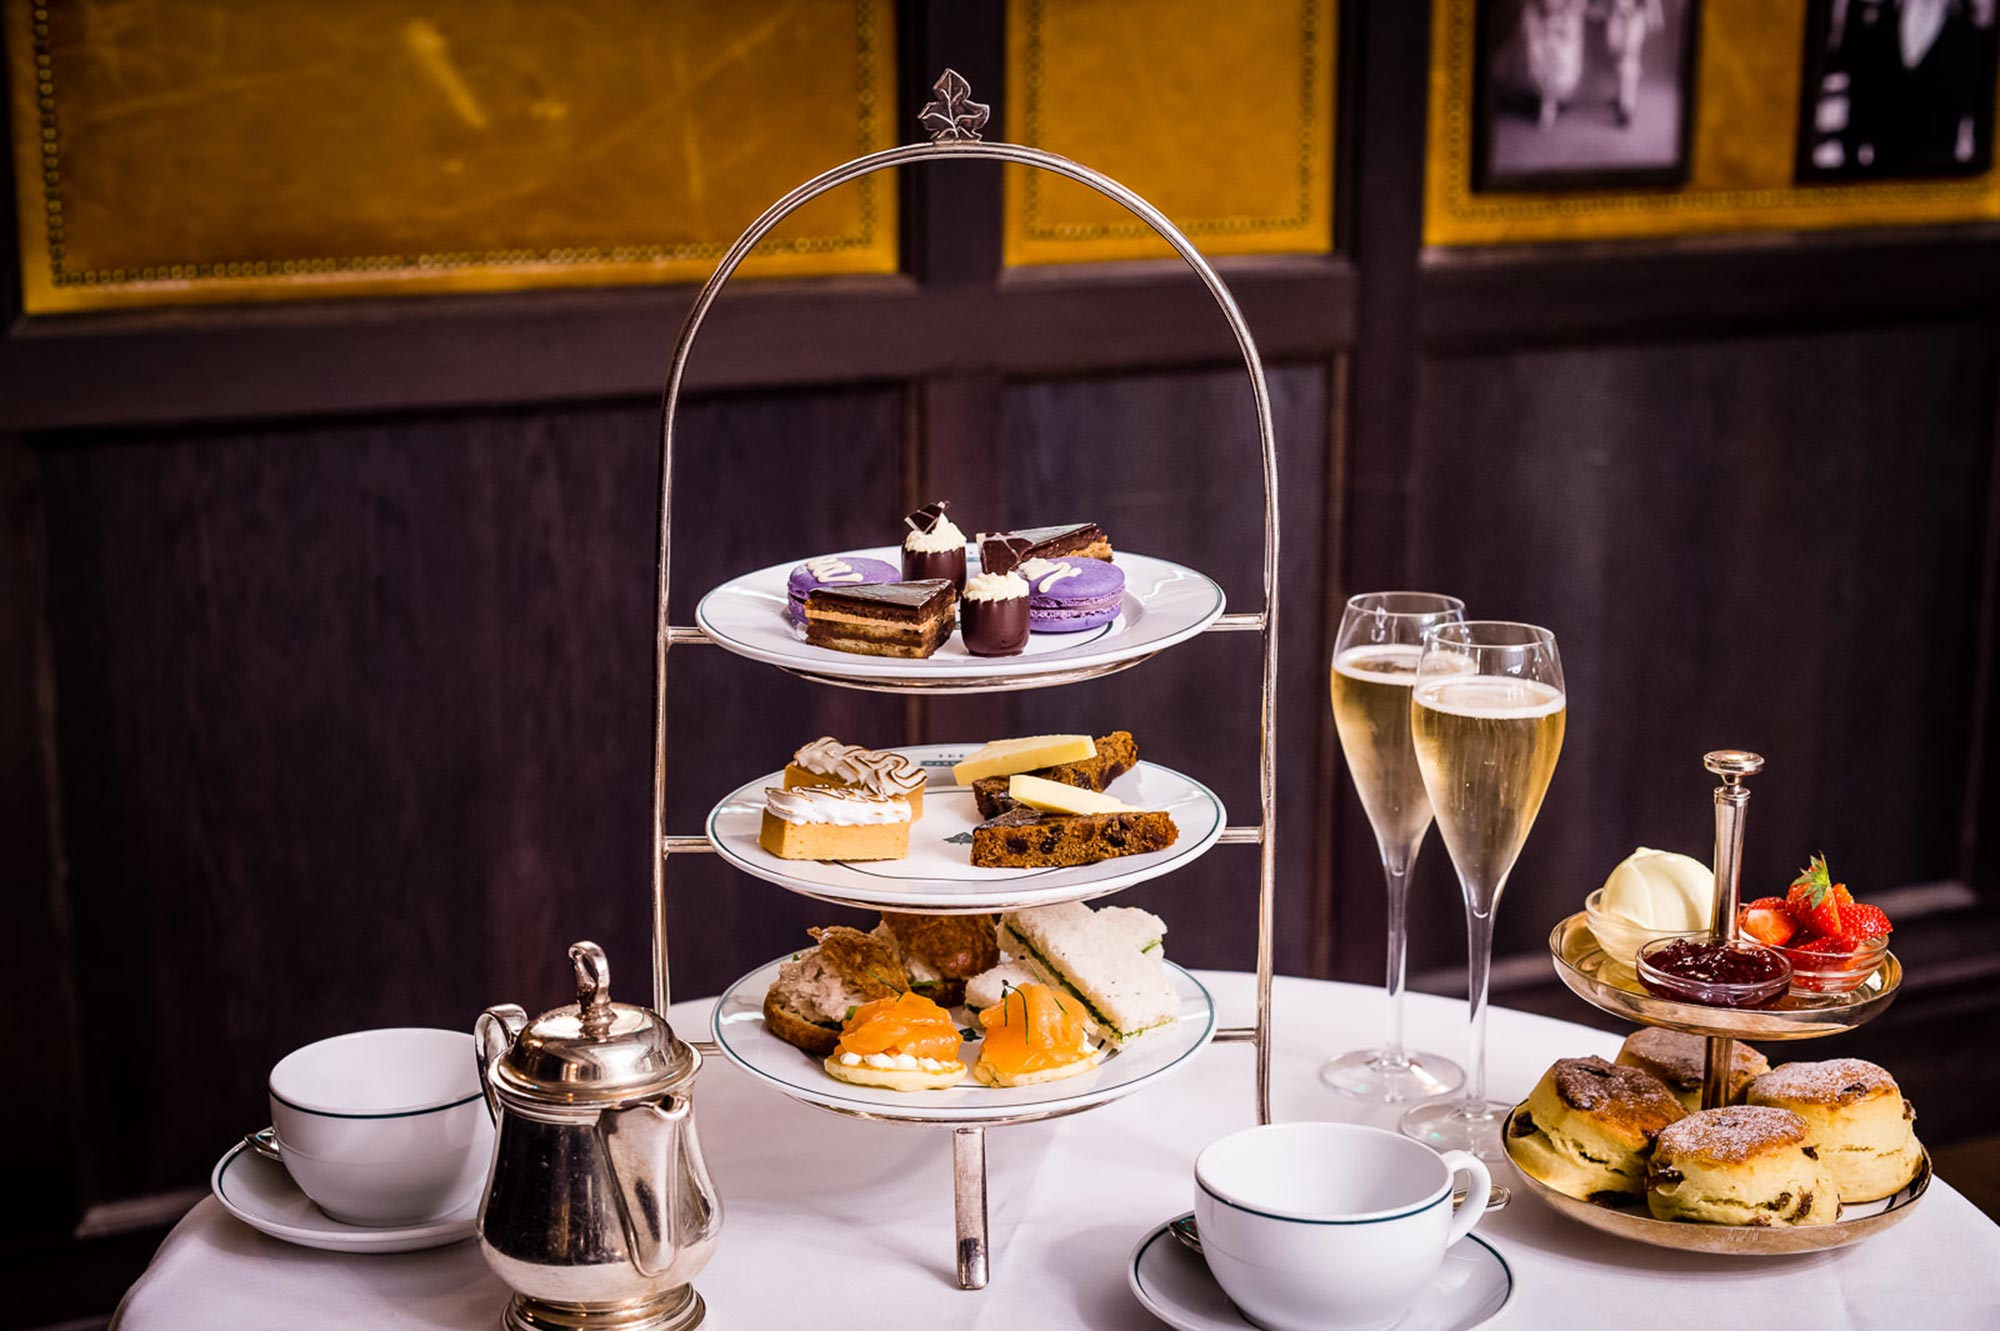 Afternoon tea in Harrogate - The Ivy Harrogate - The Ivy Harrogate